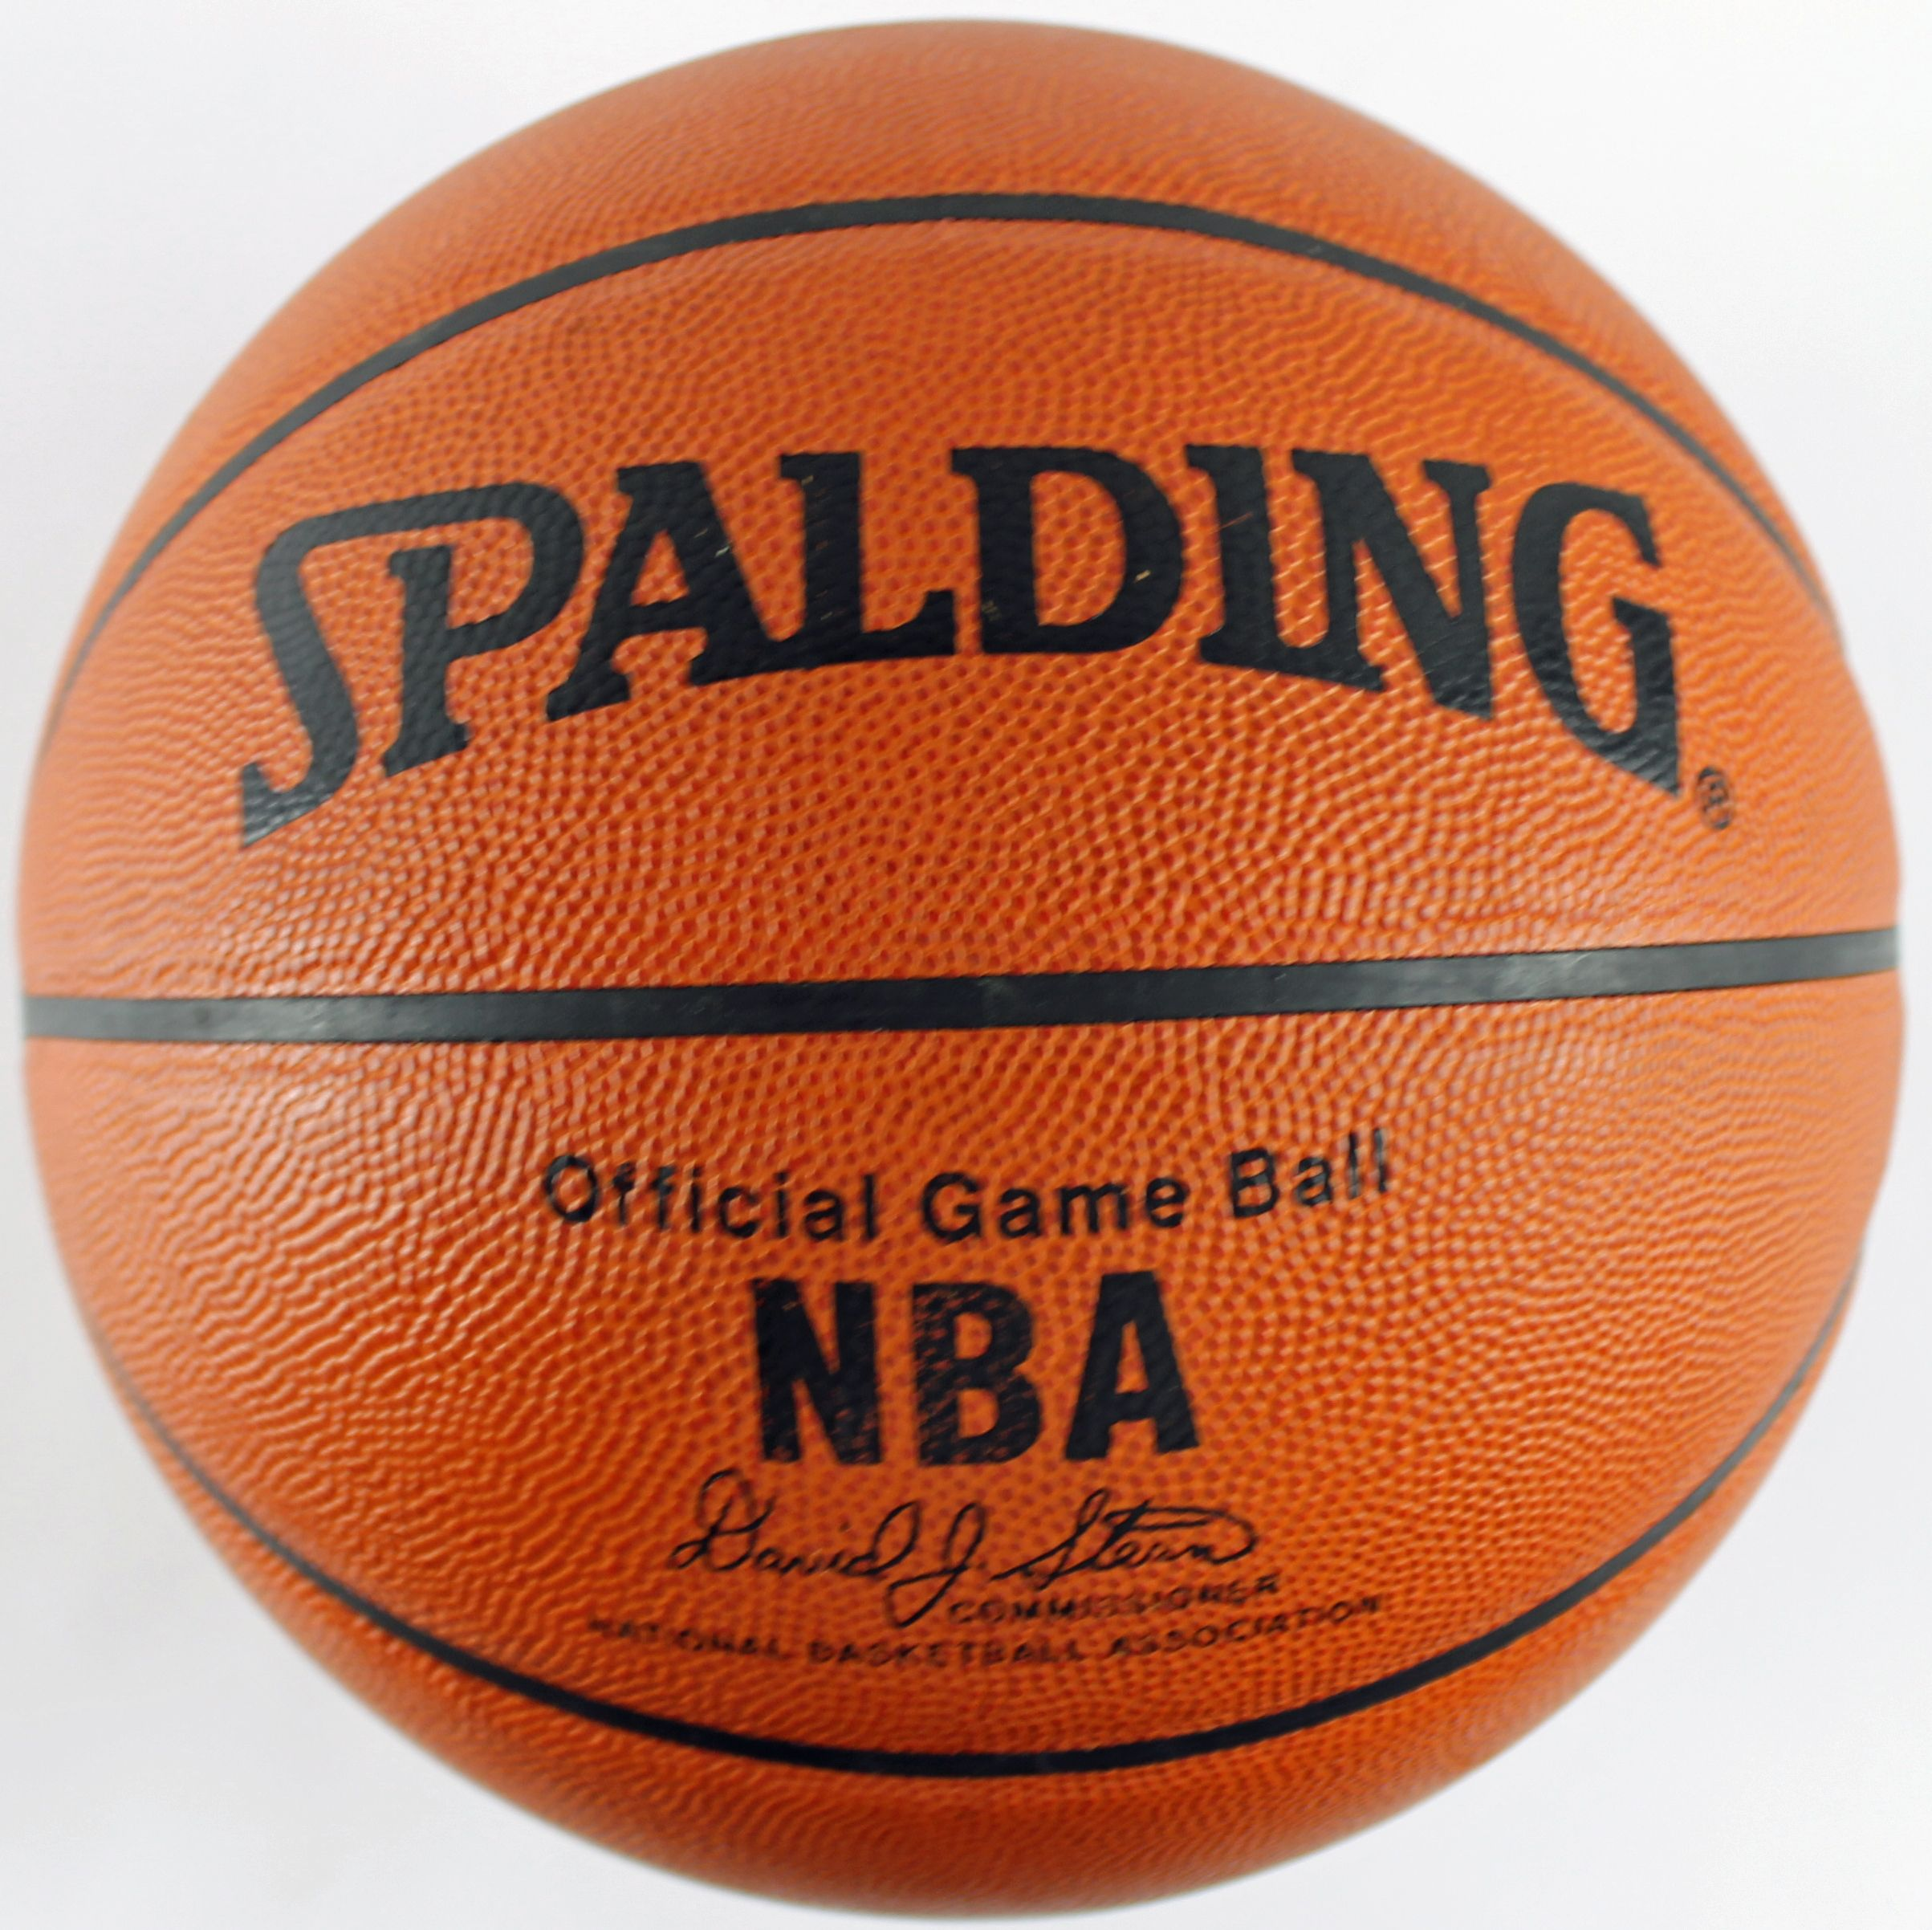 an analysis of the game basketball in nba Nba basketball game  basketball is one of the more popular sports betting options in north america with the nba and college basketball drawing  odds analysis.